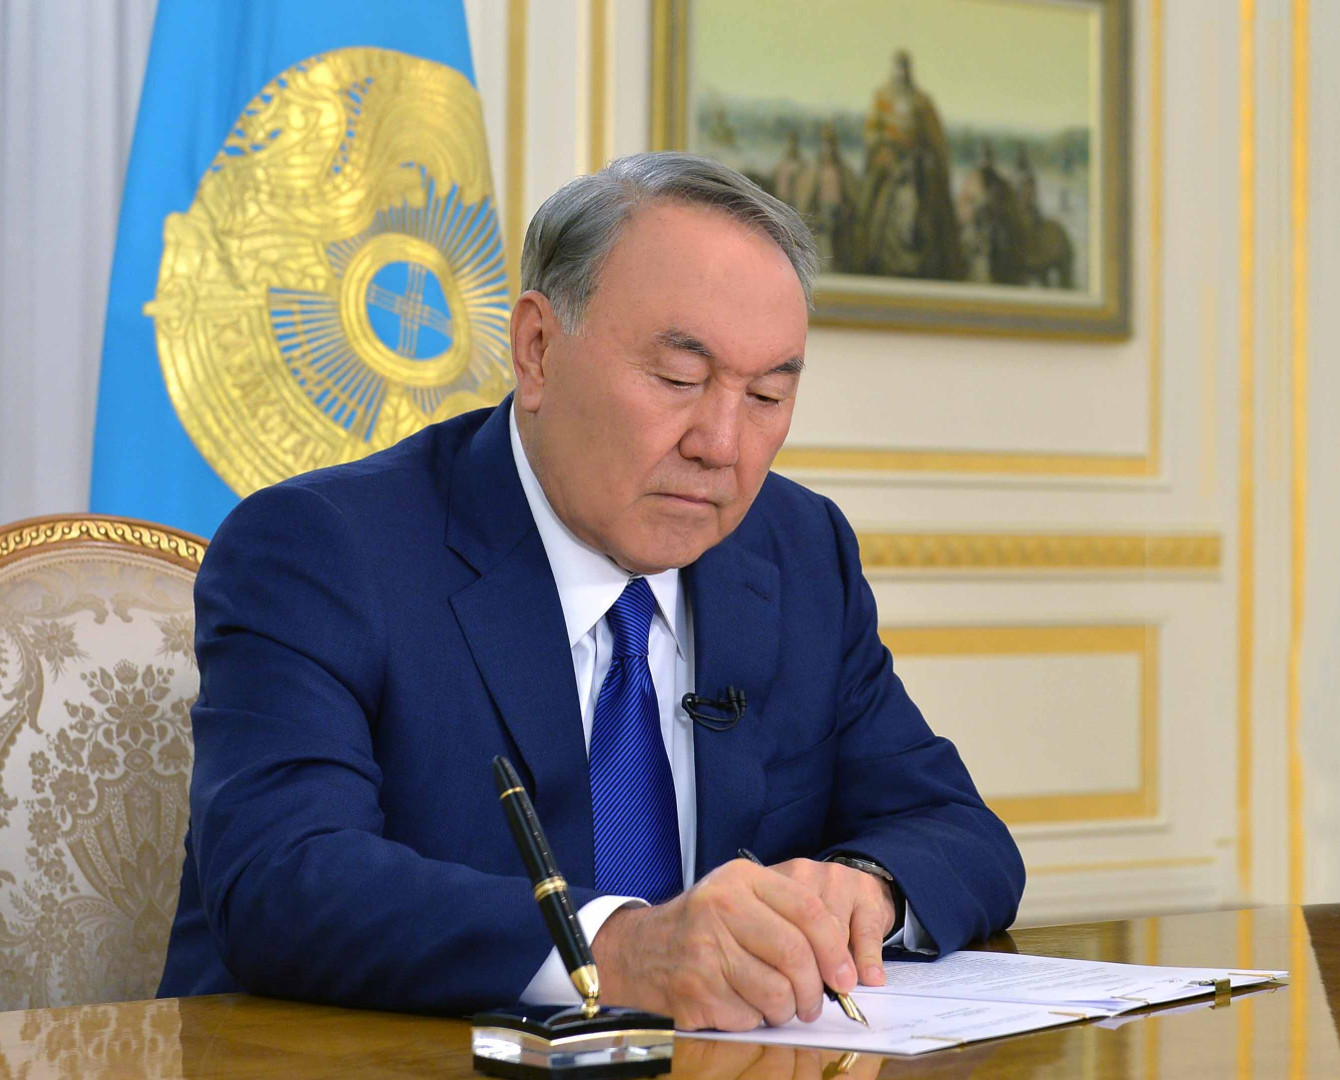 President ratifies agreement granting aid to Kyrgyzstan